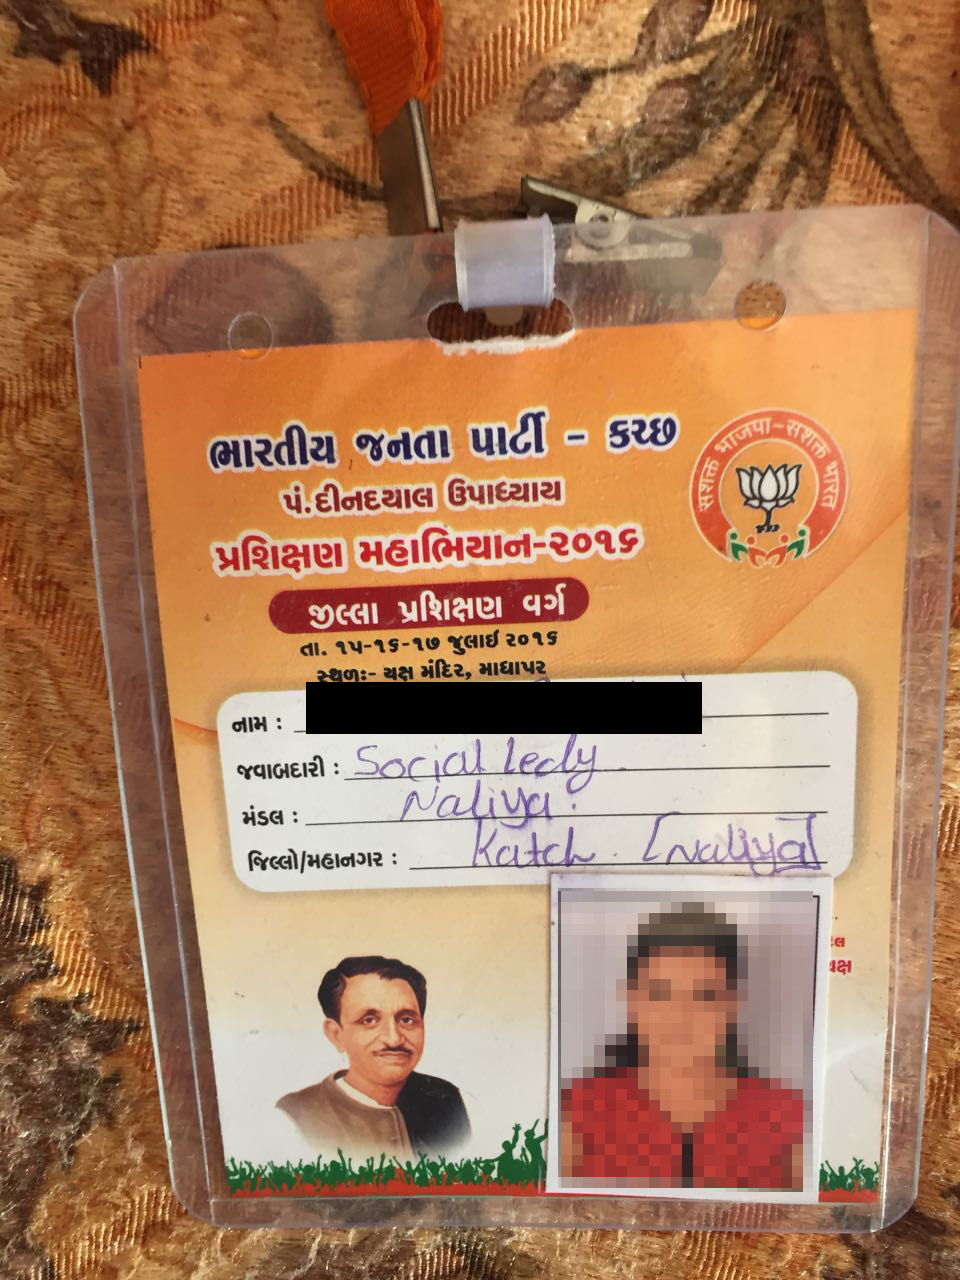 Pandey Deendayal Upadhaya Prashikshan Mahaabhiyan Kutch (BJP's workshop/programme to train new members) id card of the victim that she has produced along with her statement. Courtesy: Damayantee Dhar